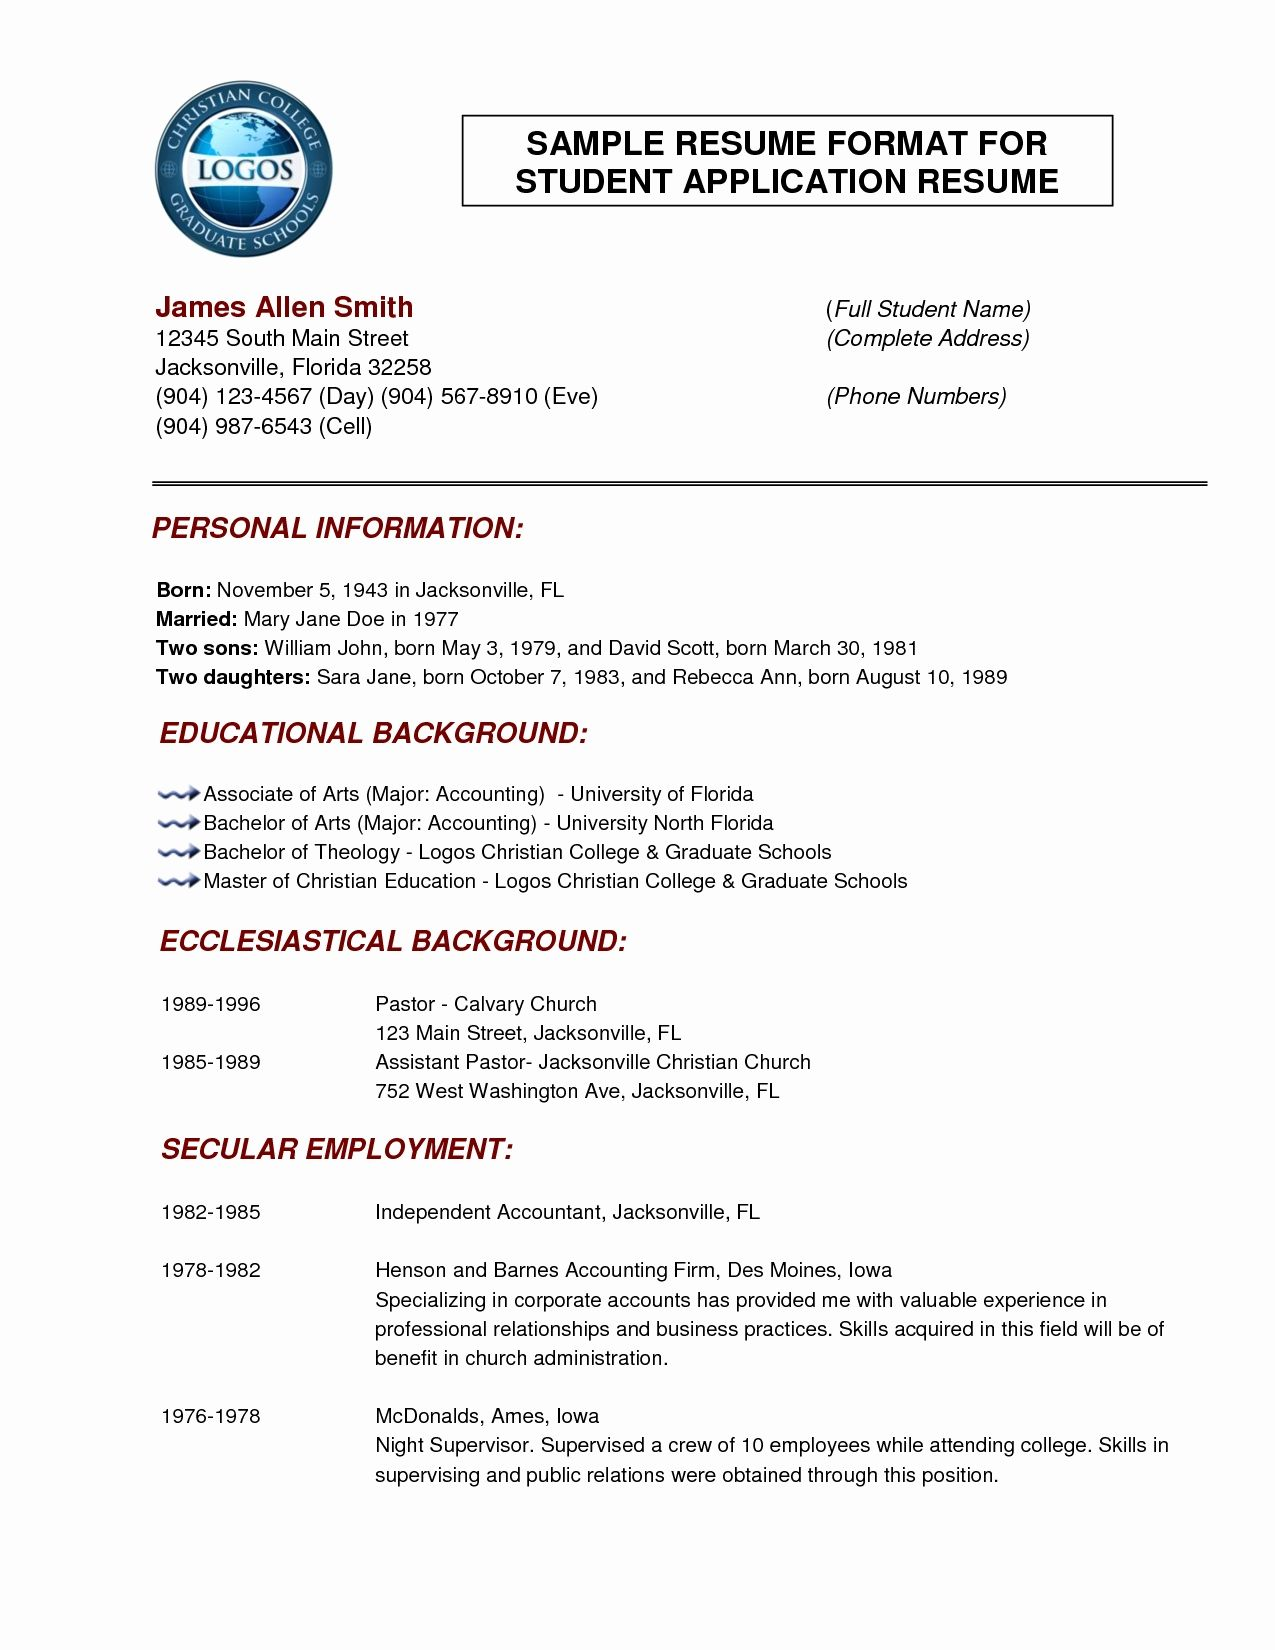 Resume Format Normal Resume cover letter template, Cover